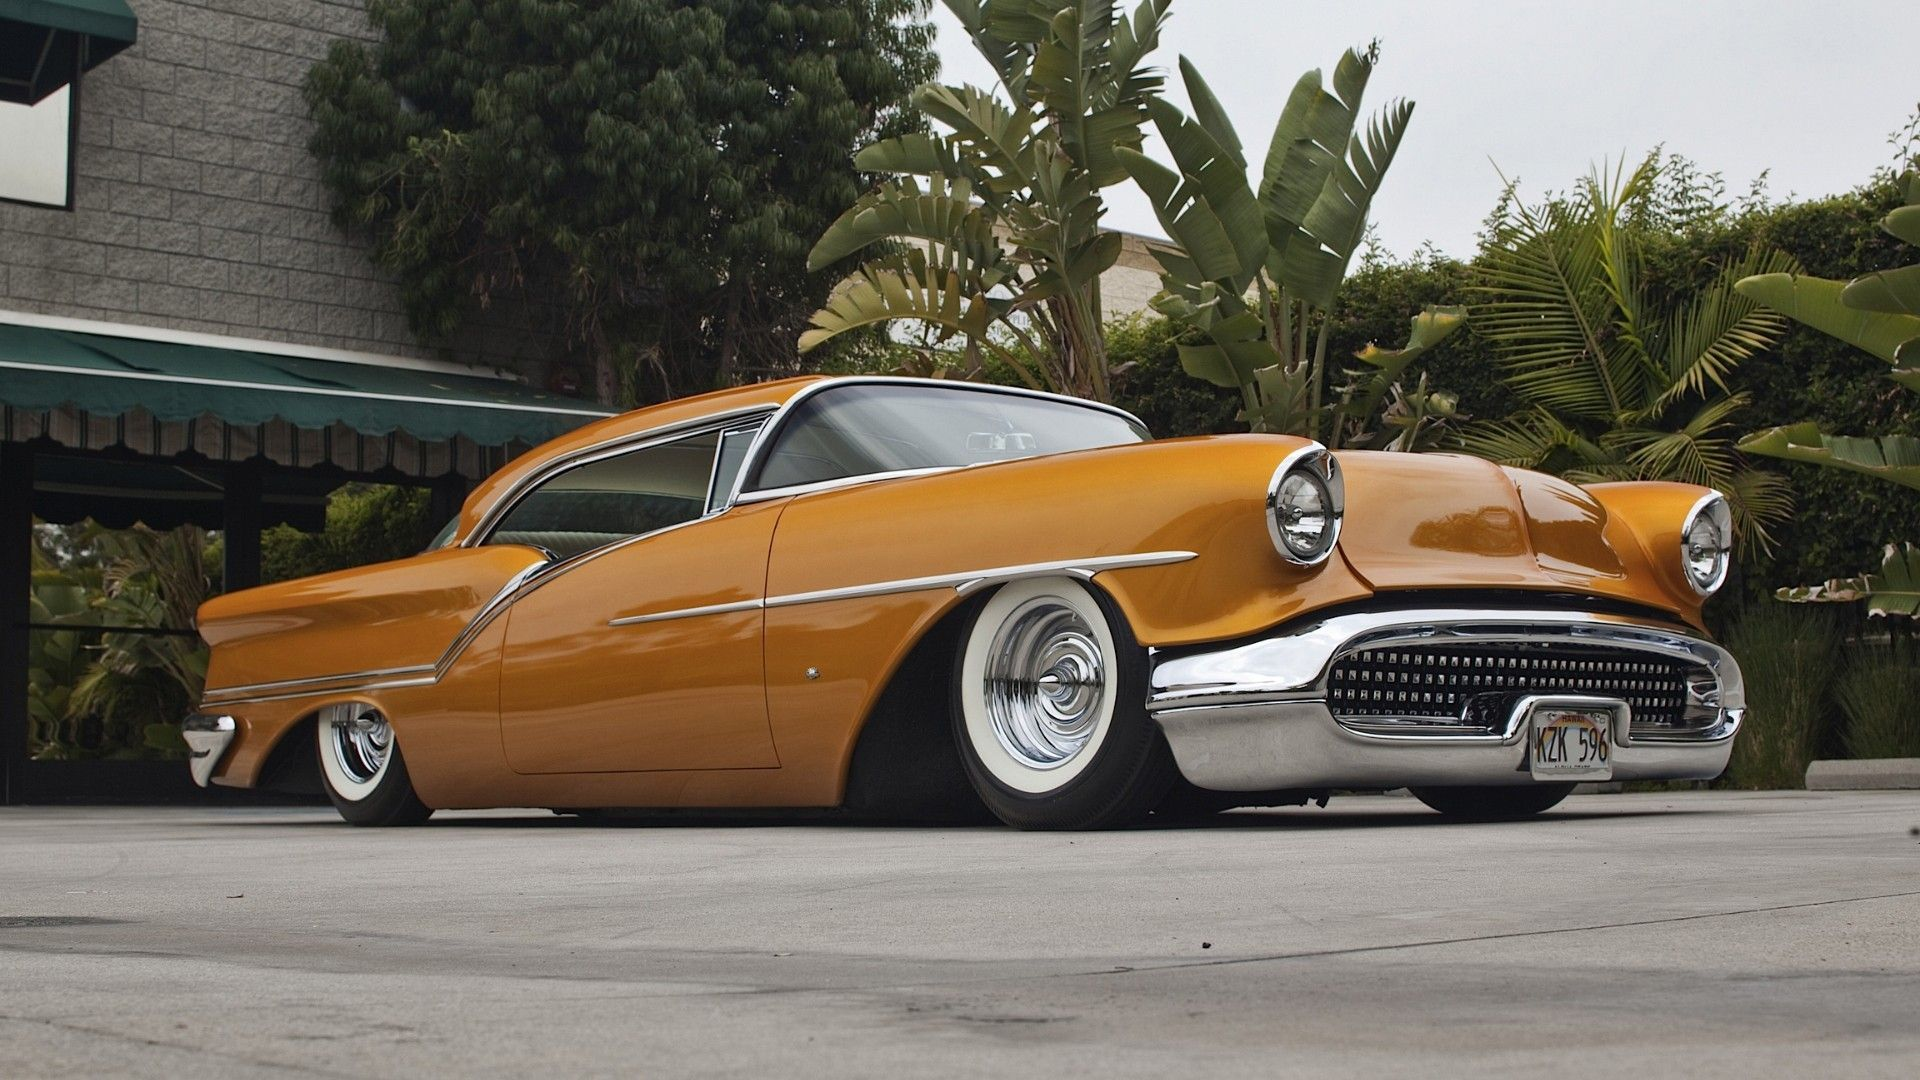 lowrider cars wallpapers large hd wallpaper database